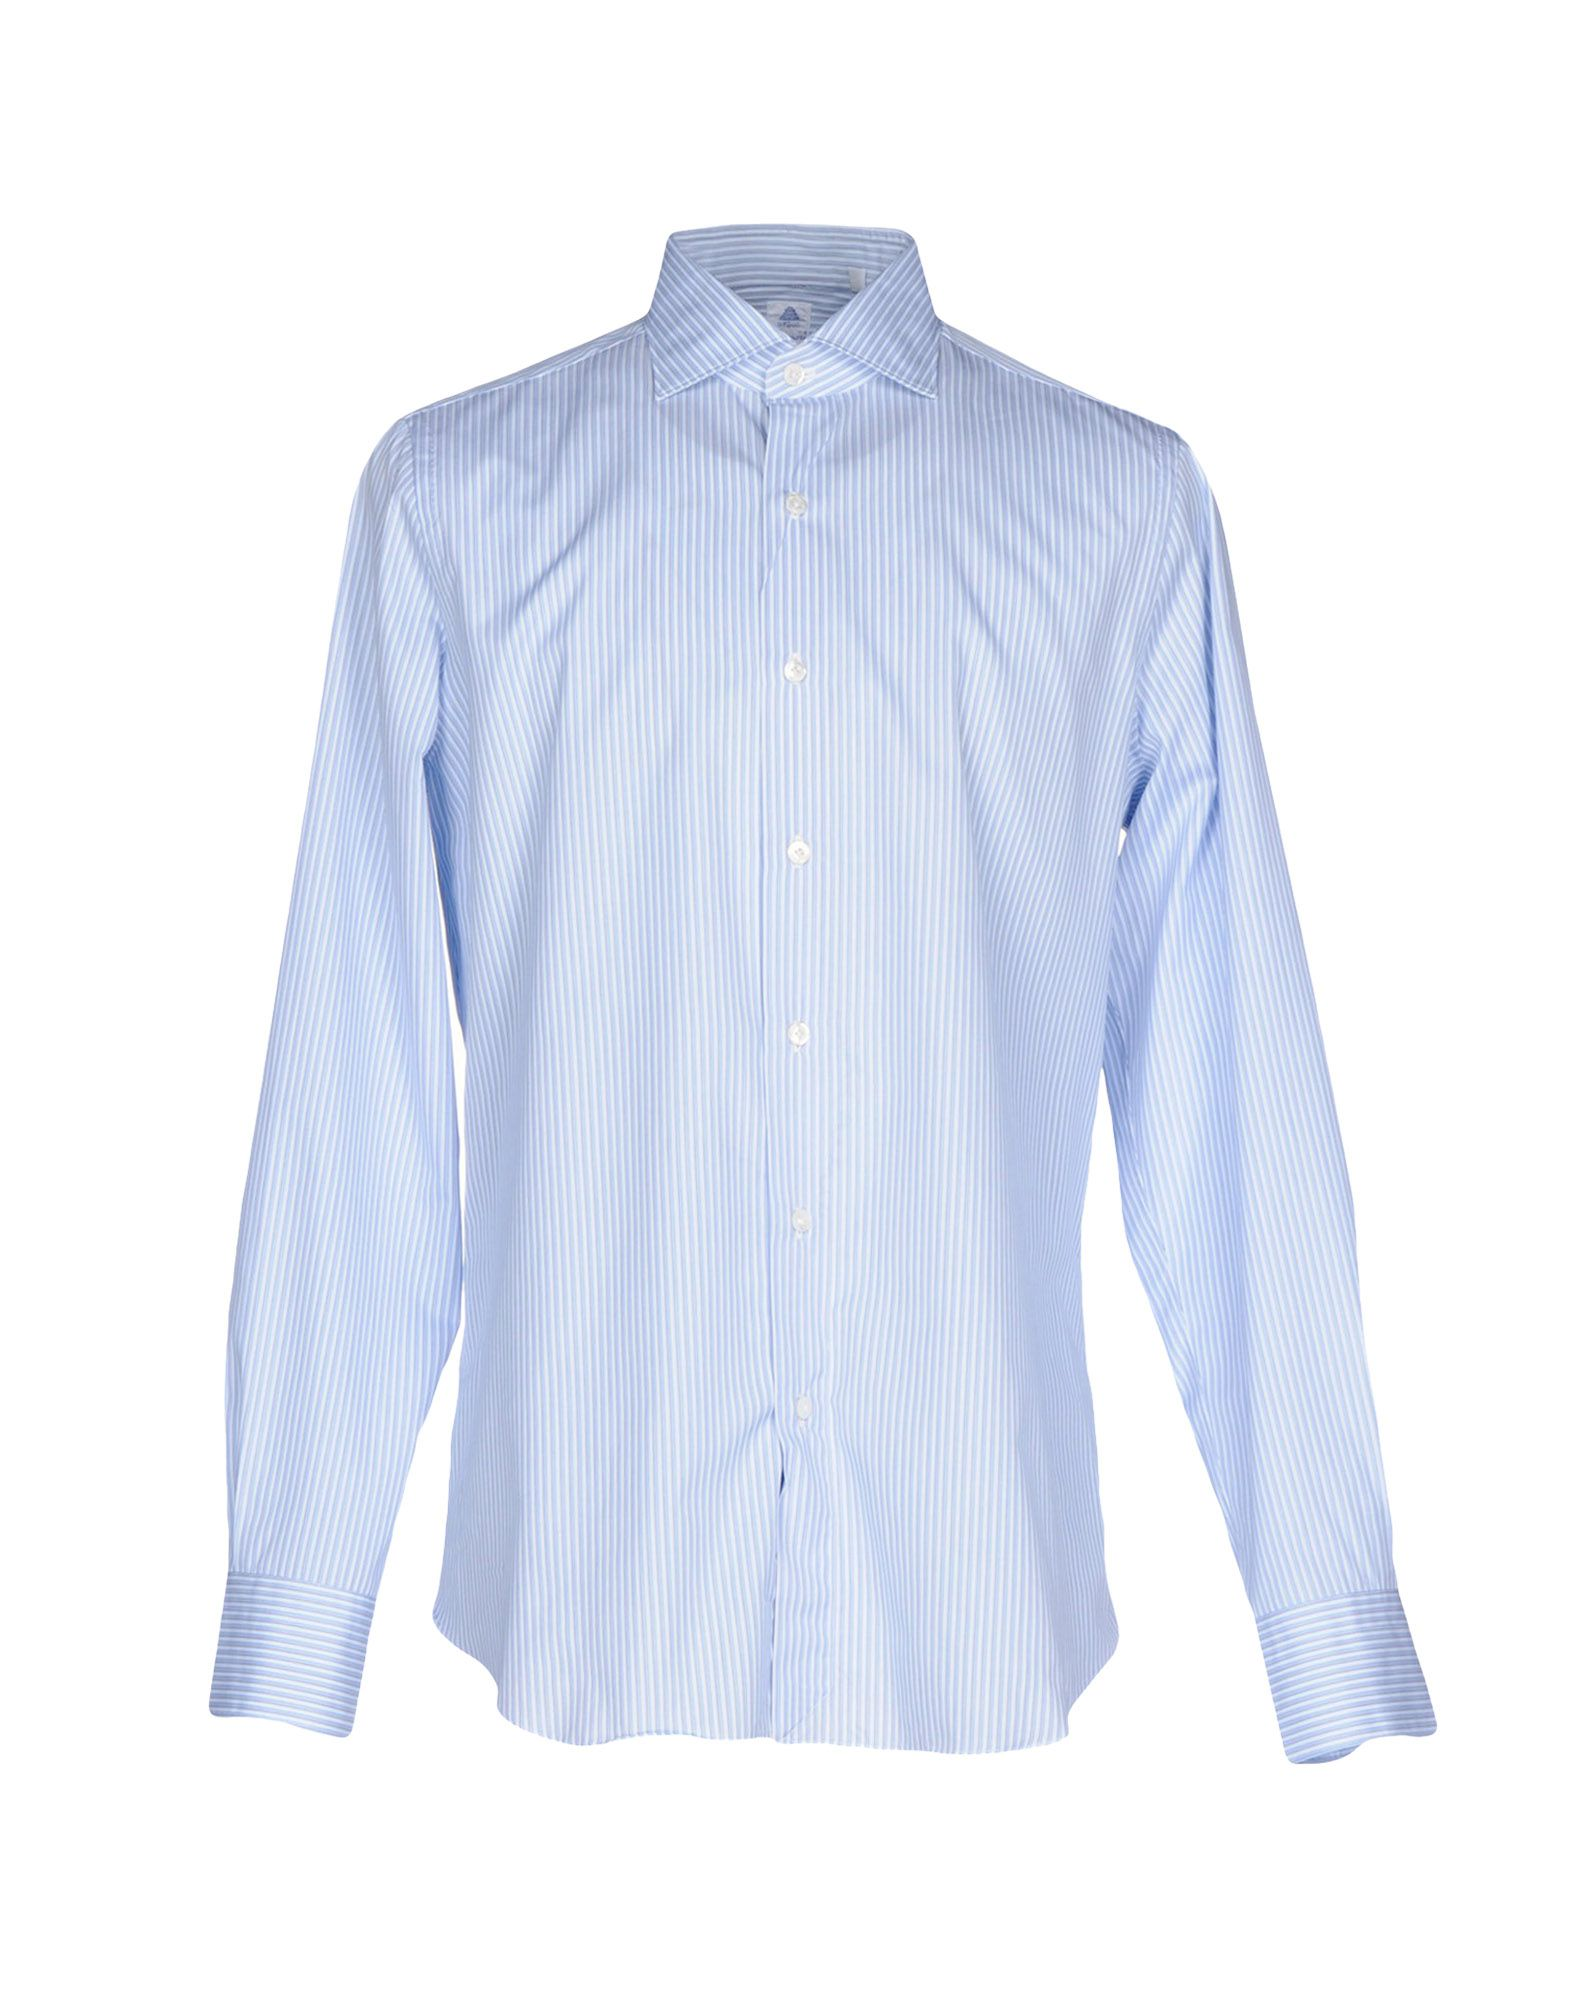 SOLD OUT         Camicia A Righe Finamore 1925 Uomo - Acquista online su